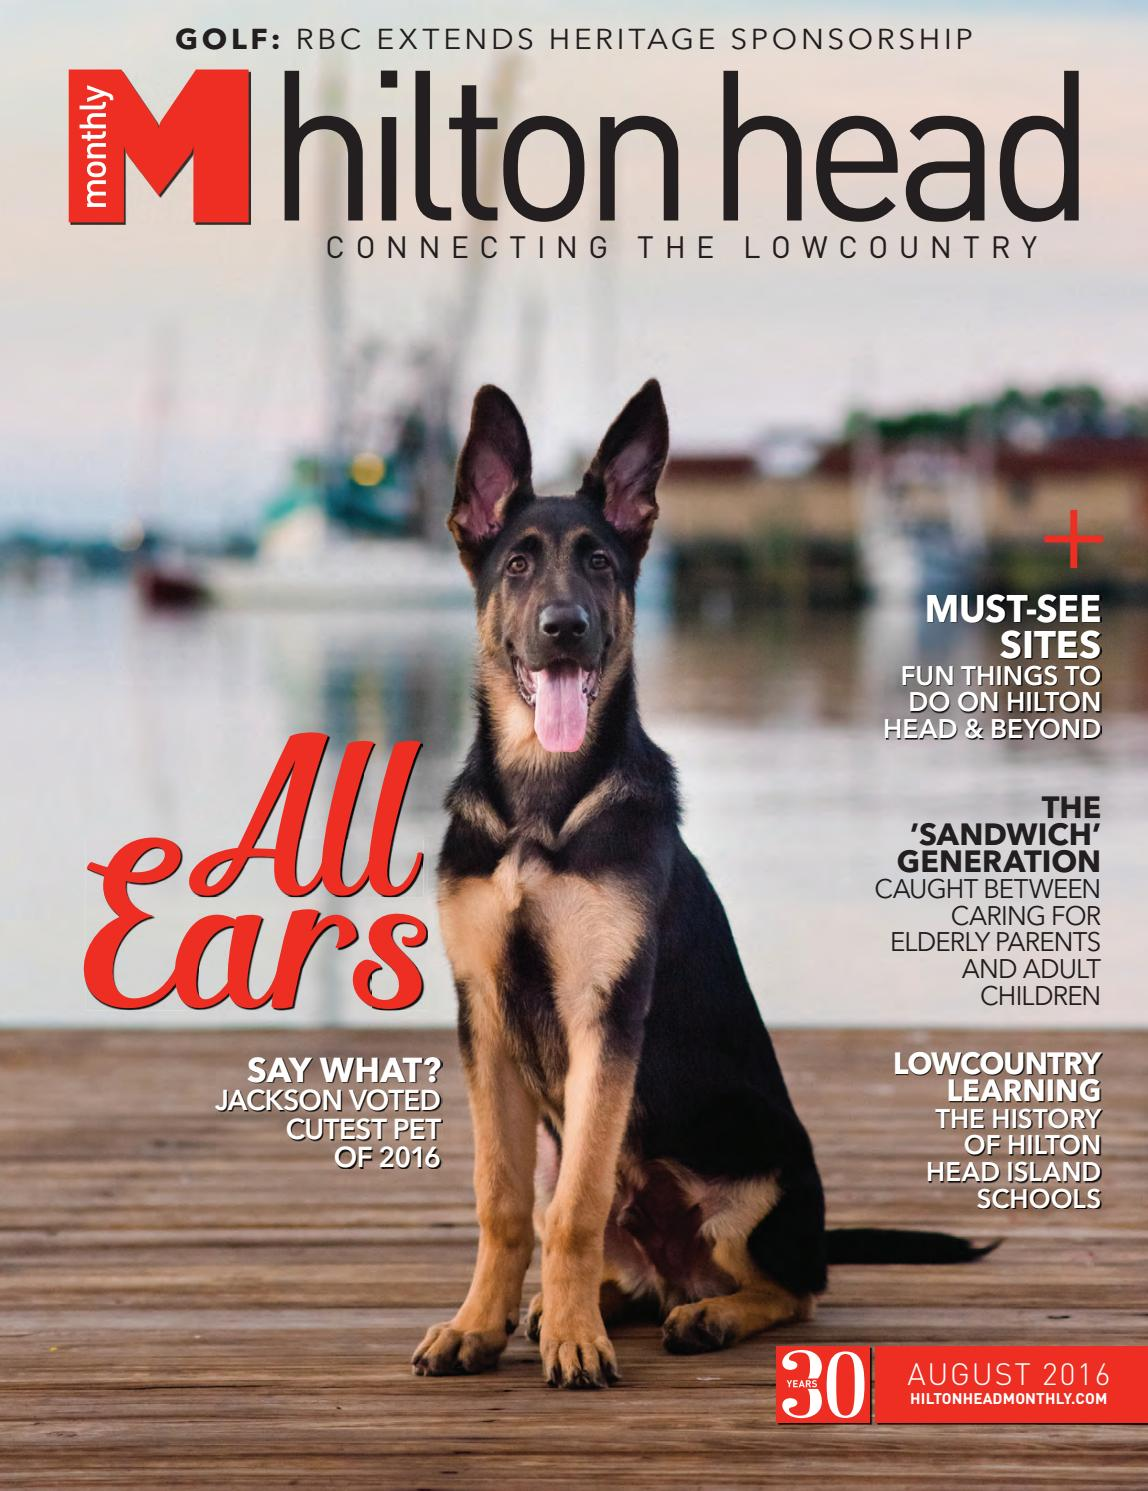 Hilton head monthly august 2016 (new) by hilton head monthly   issuu